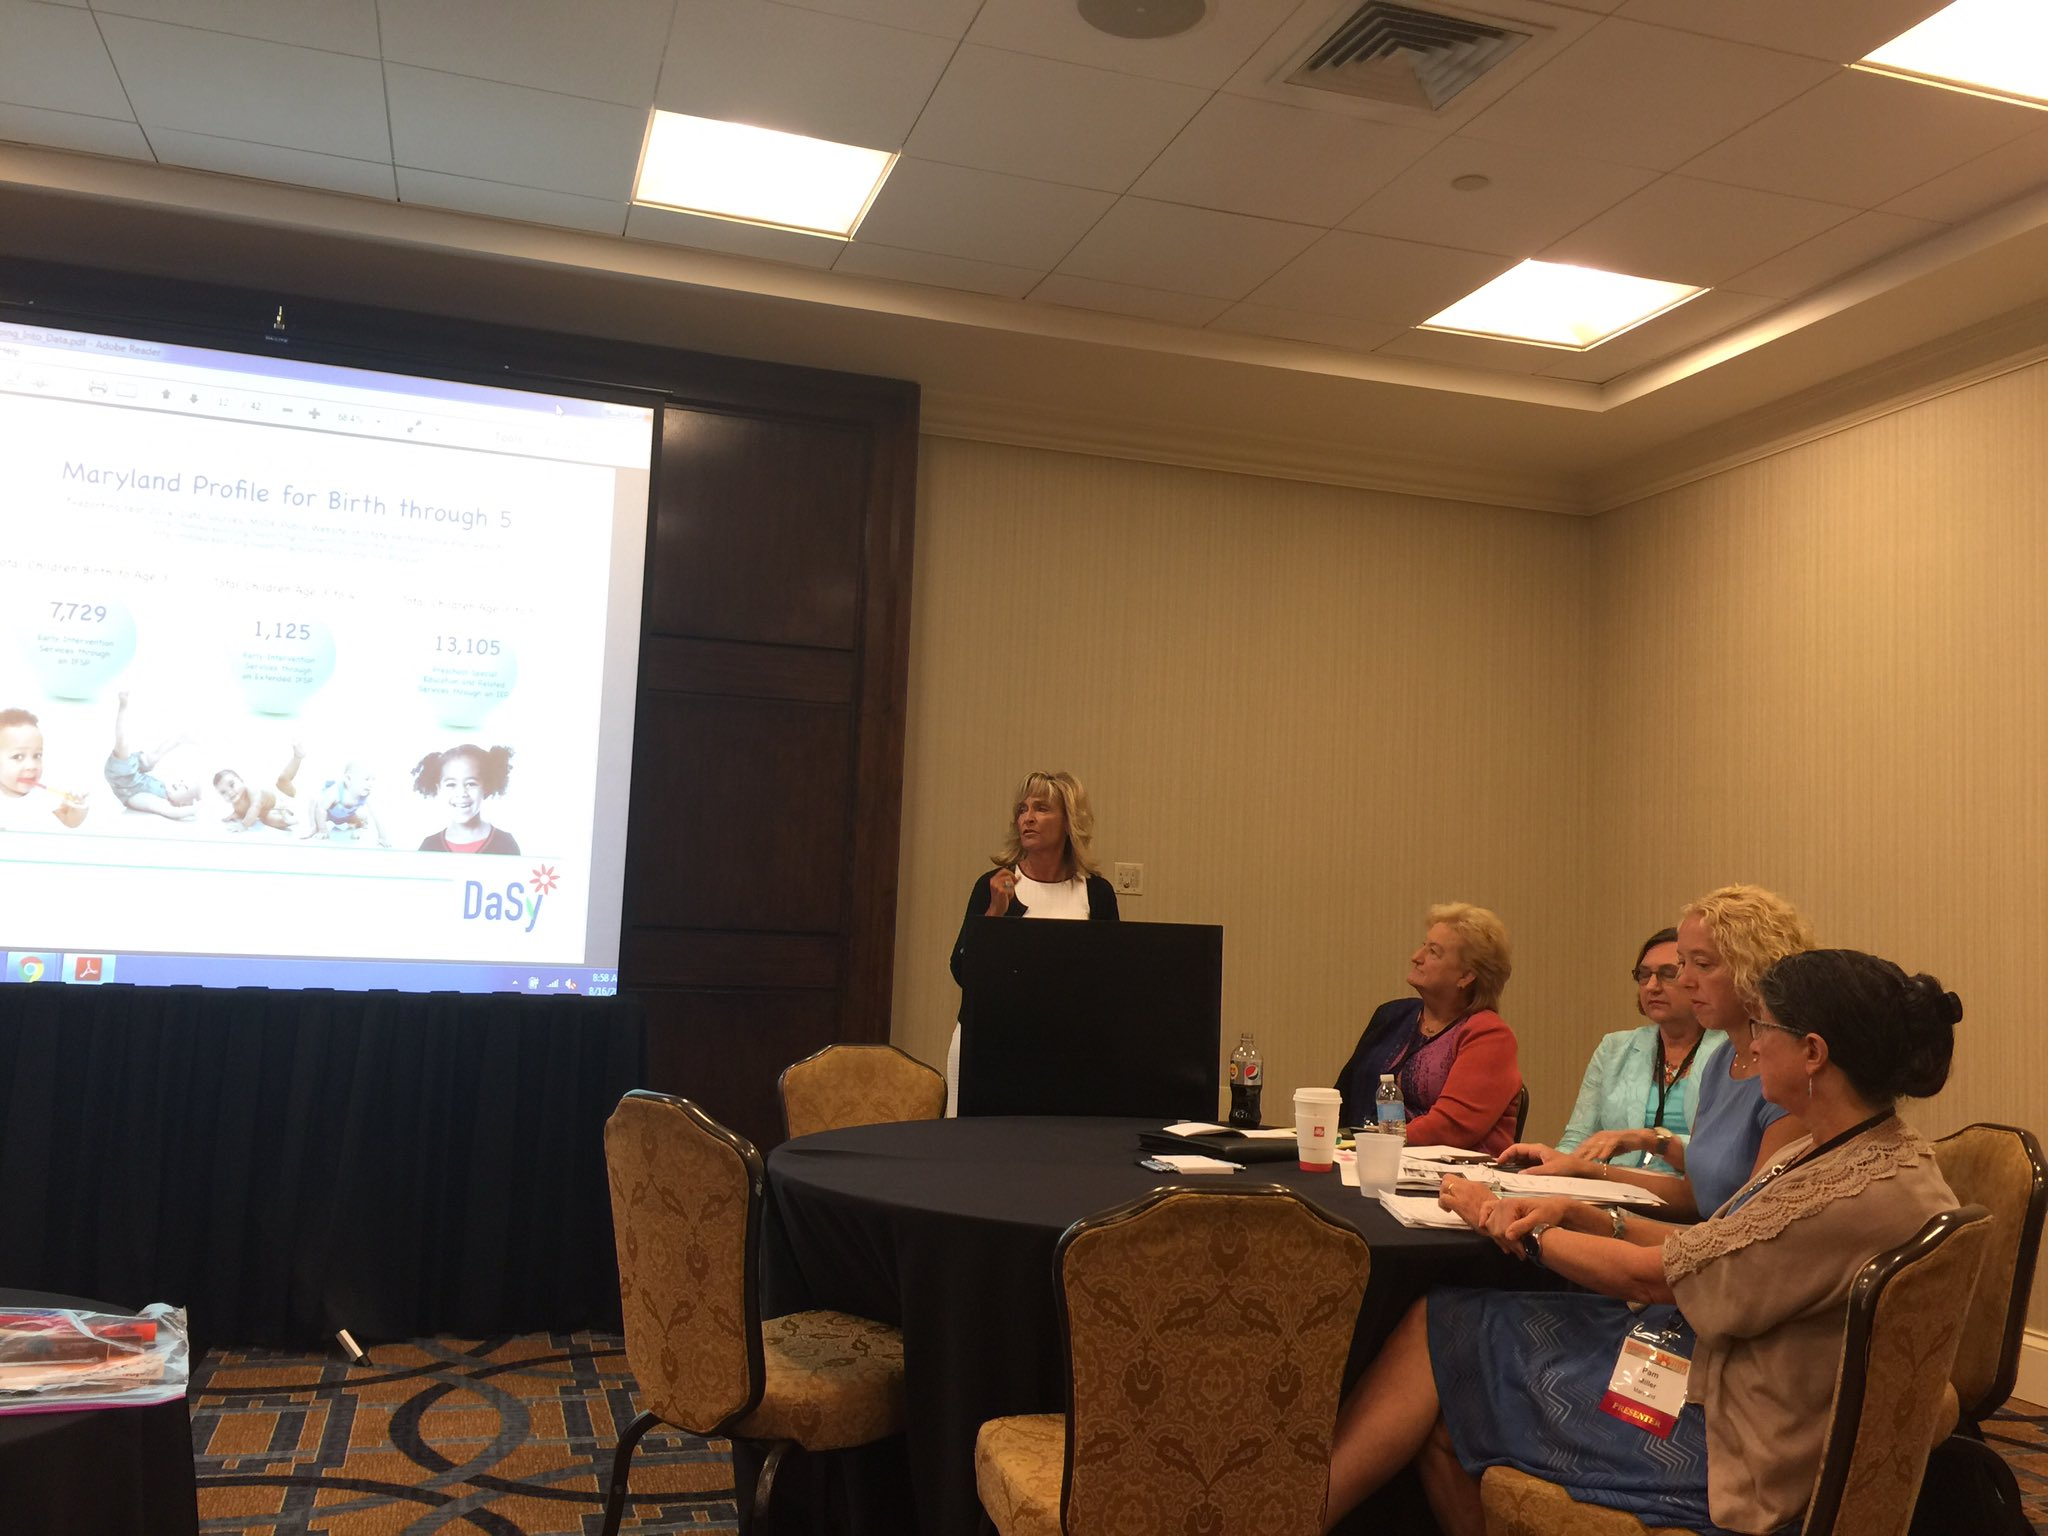 """Marcella Franczkowski and @JHU_CTE presenting """"Tapping into Data to Make a Difference"""" #ECIDEA16 https://t.co/j1eBvruaEm"""